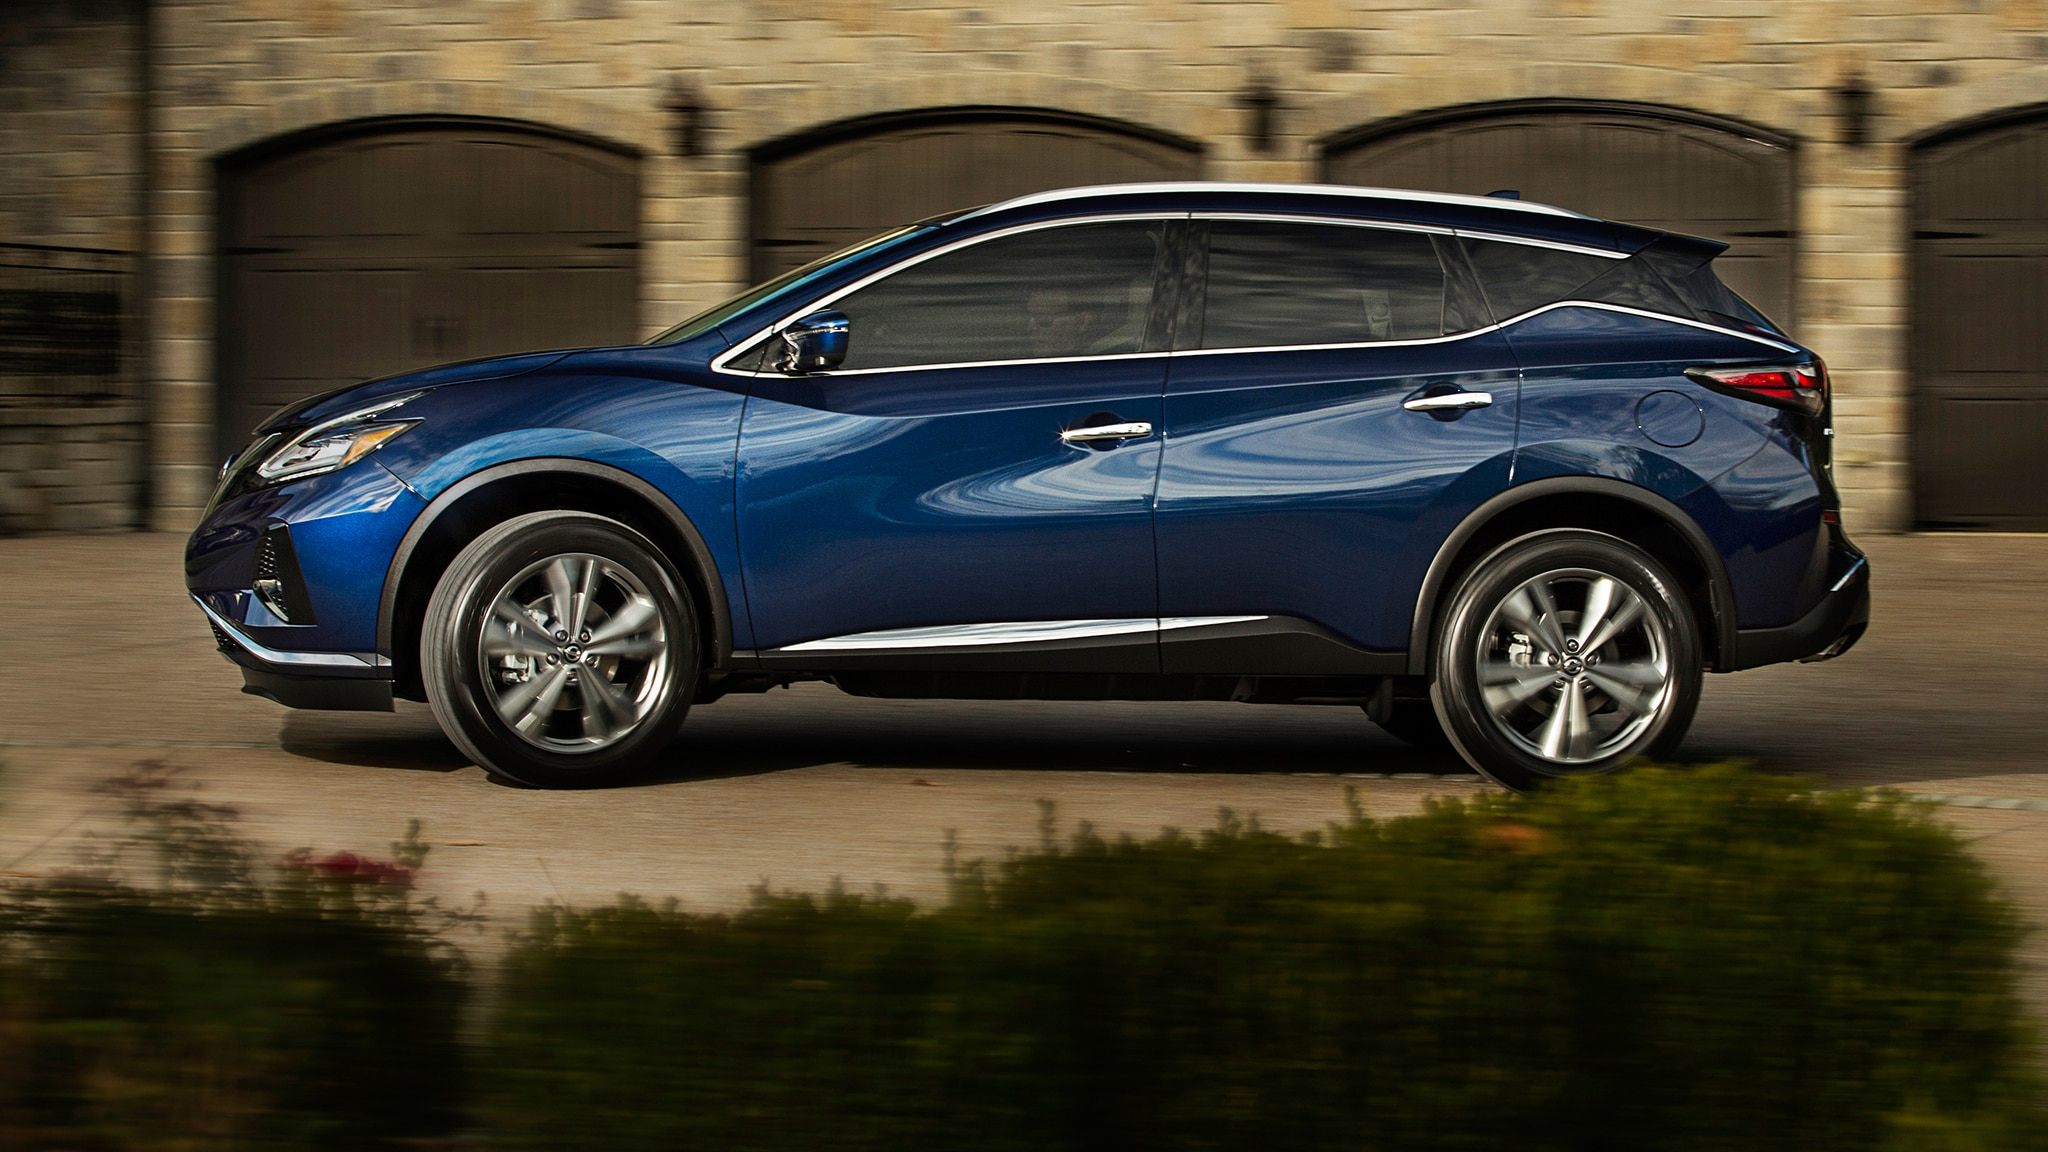 2019 Nissan Murano Is Refreshed with More Tech and Updated ...